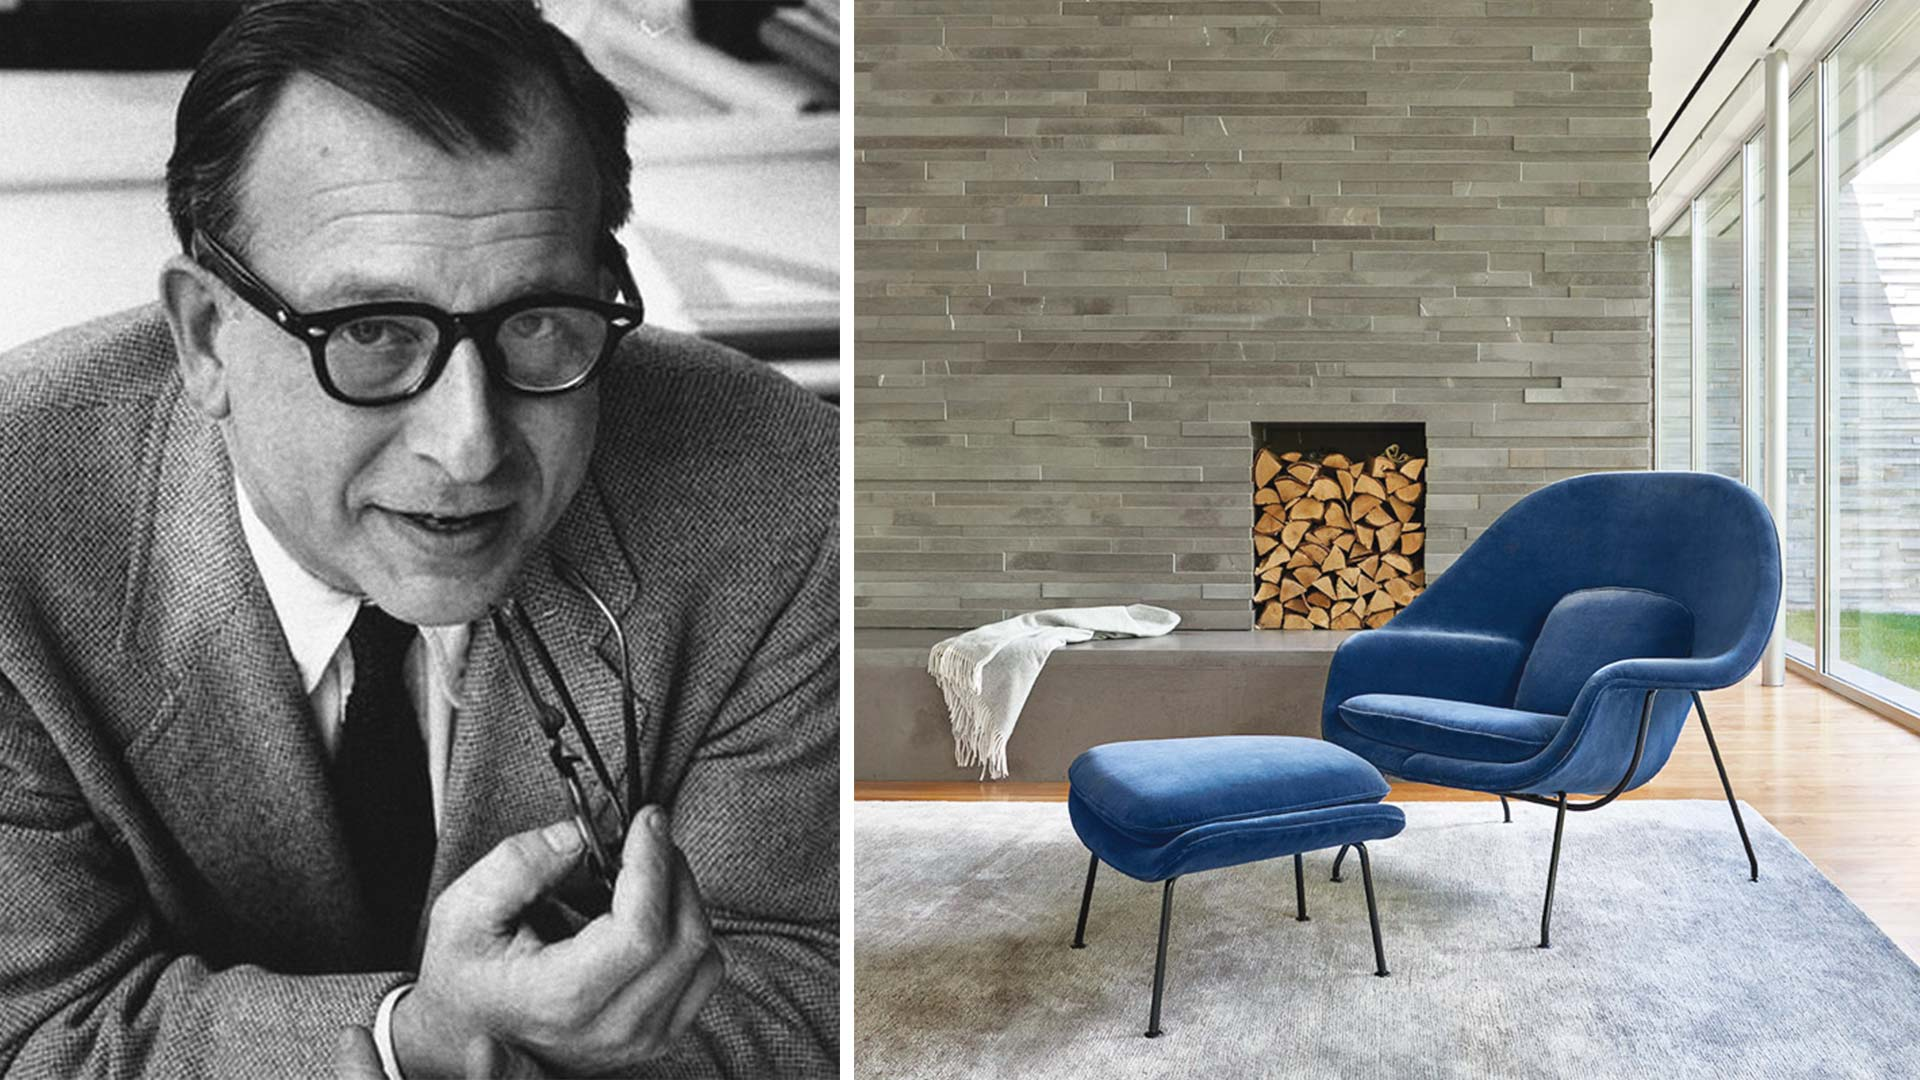 Knoll Saarinen Design As Icon The Womb Chair By Eero Saarinen Ad India